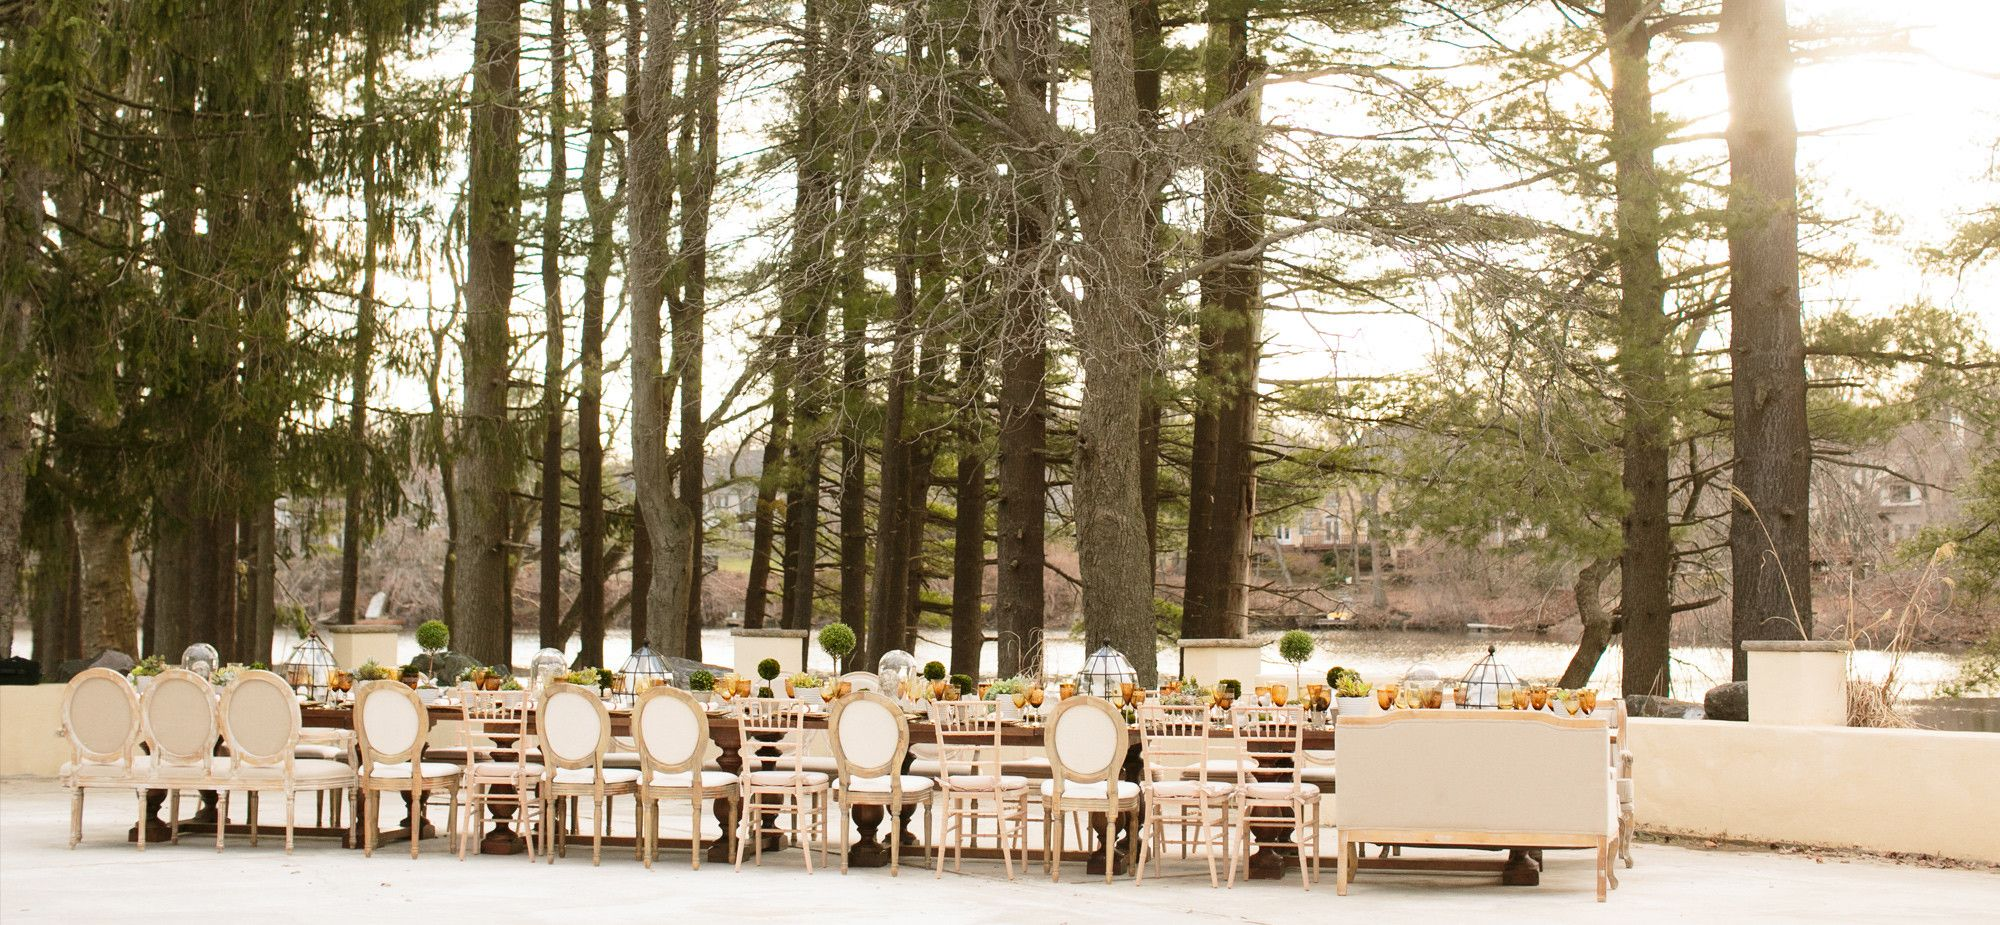 unique wedding venues northern new jersey%0A The Place on the Lake wedding venue in east brunswick